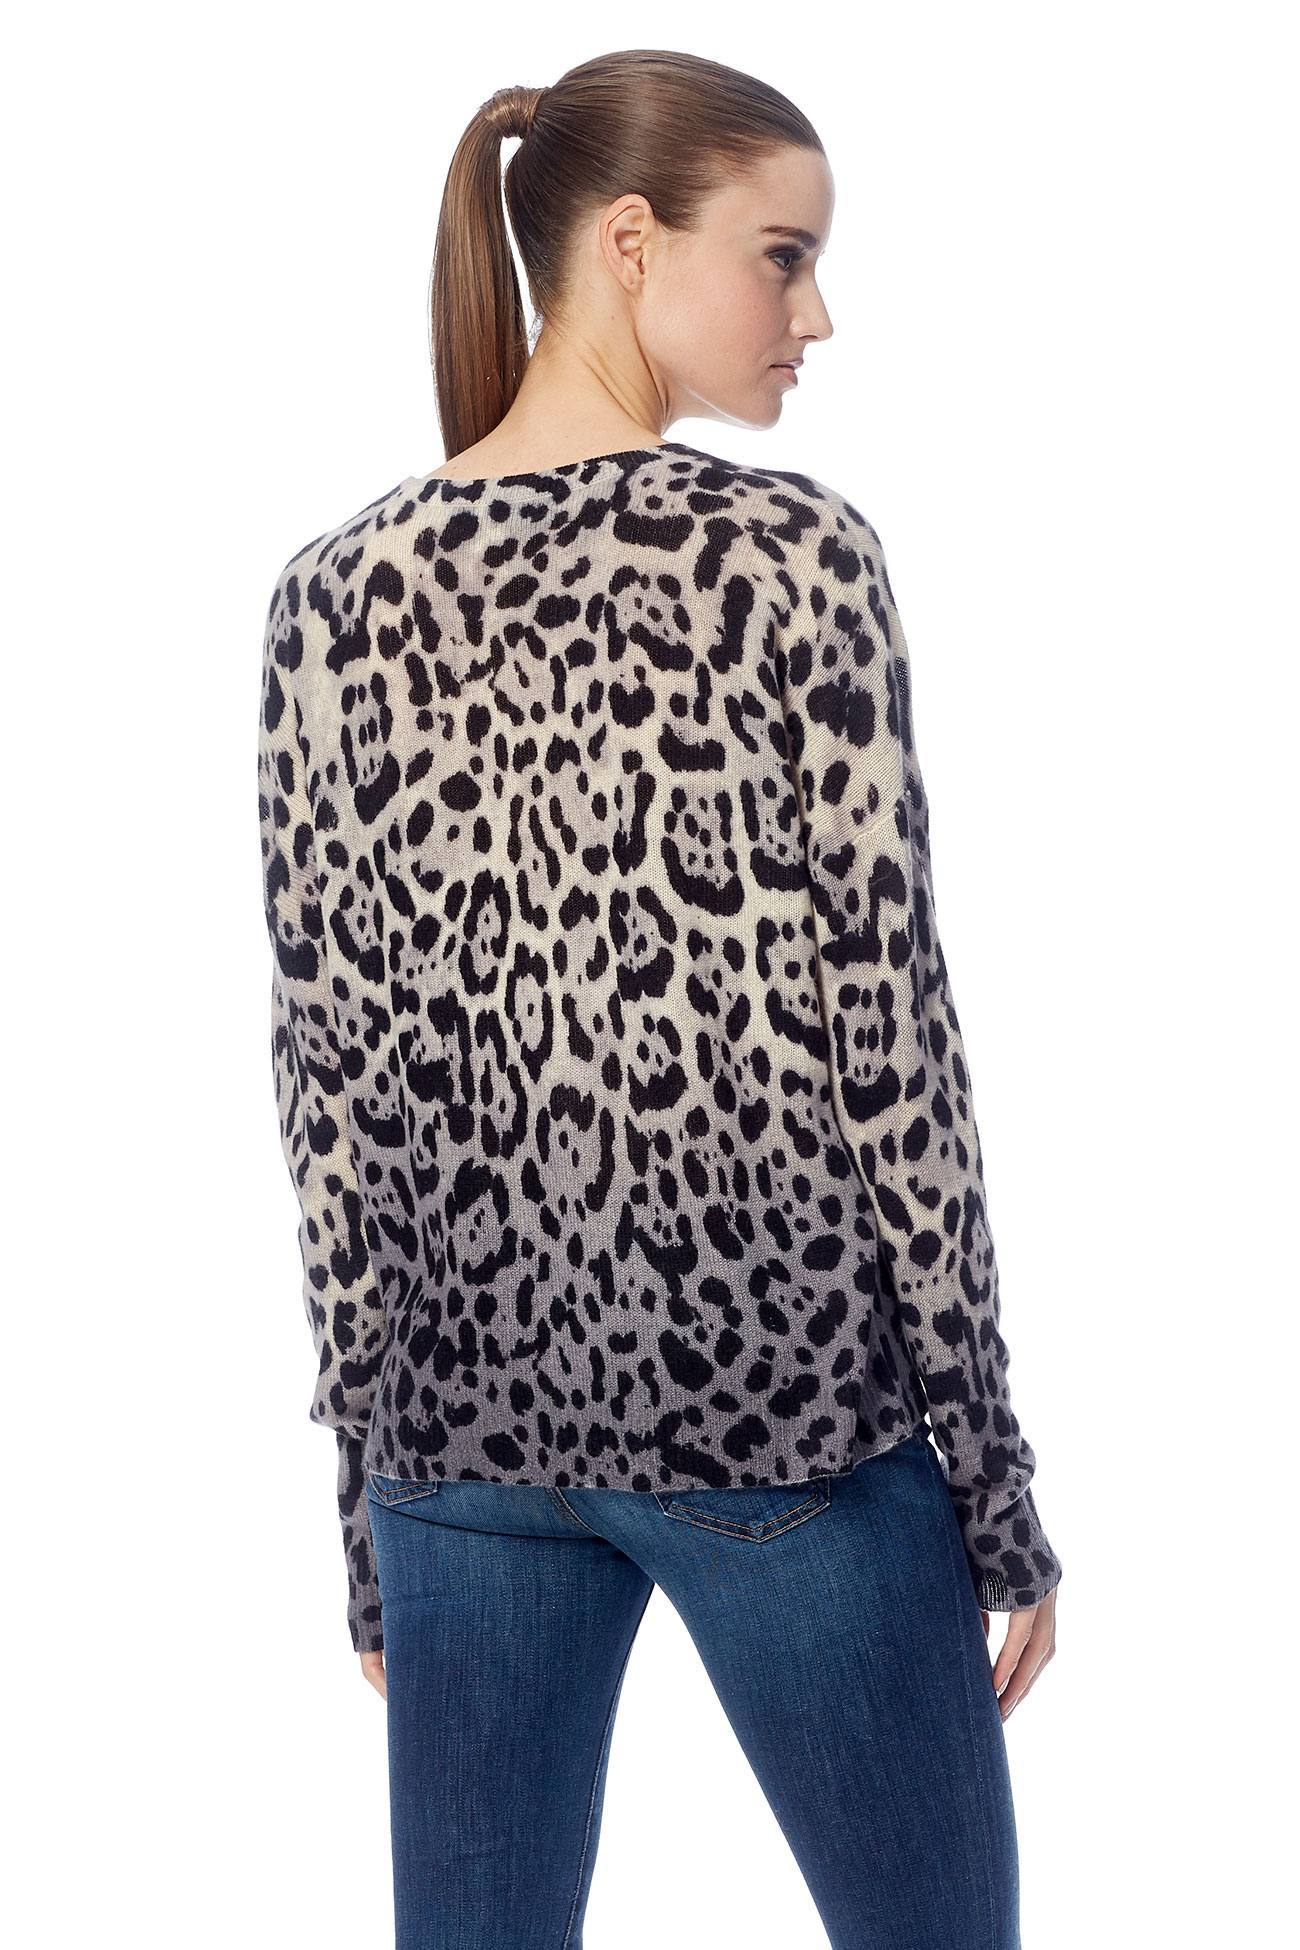 Juliana Crew Neck Sweater - Leopard Print/Dip Dye